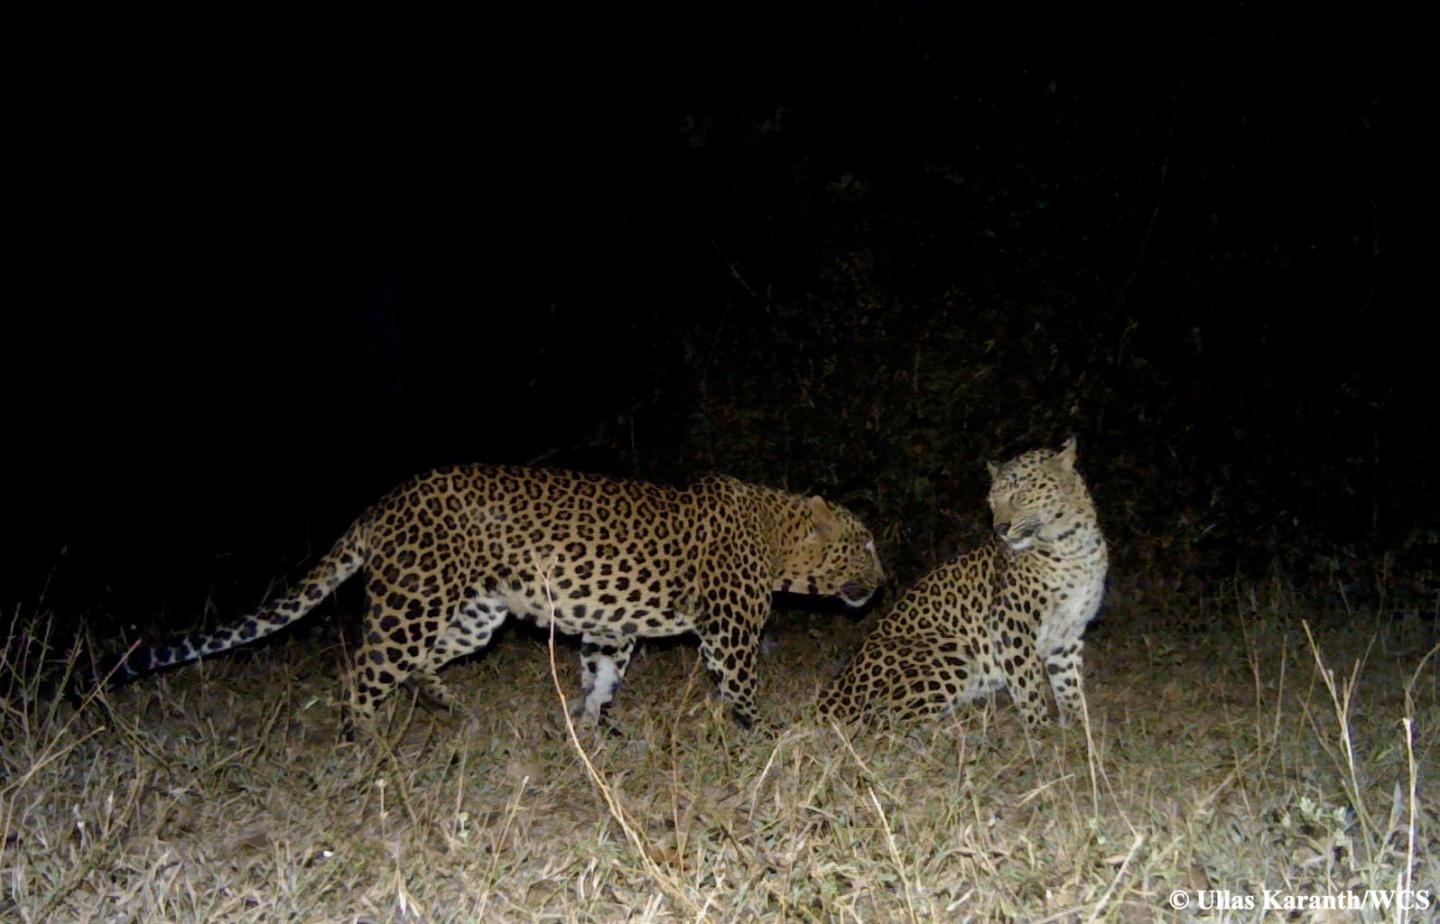 Courting Leopards